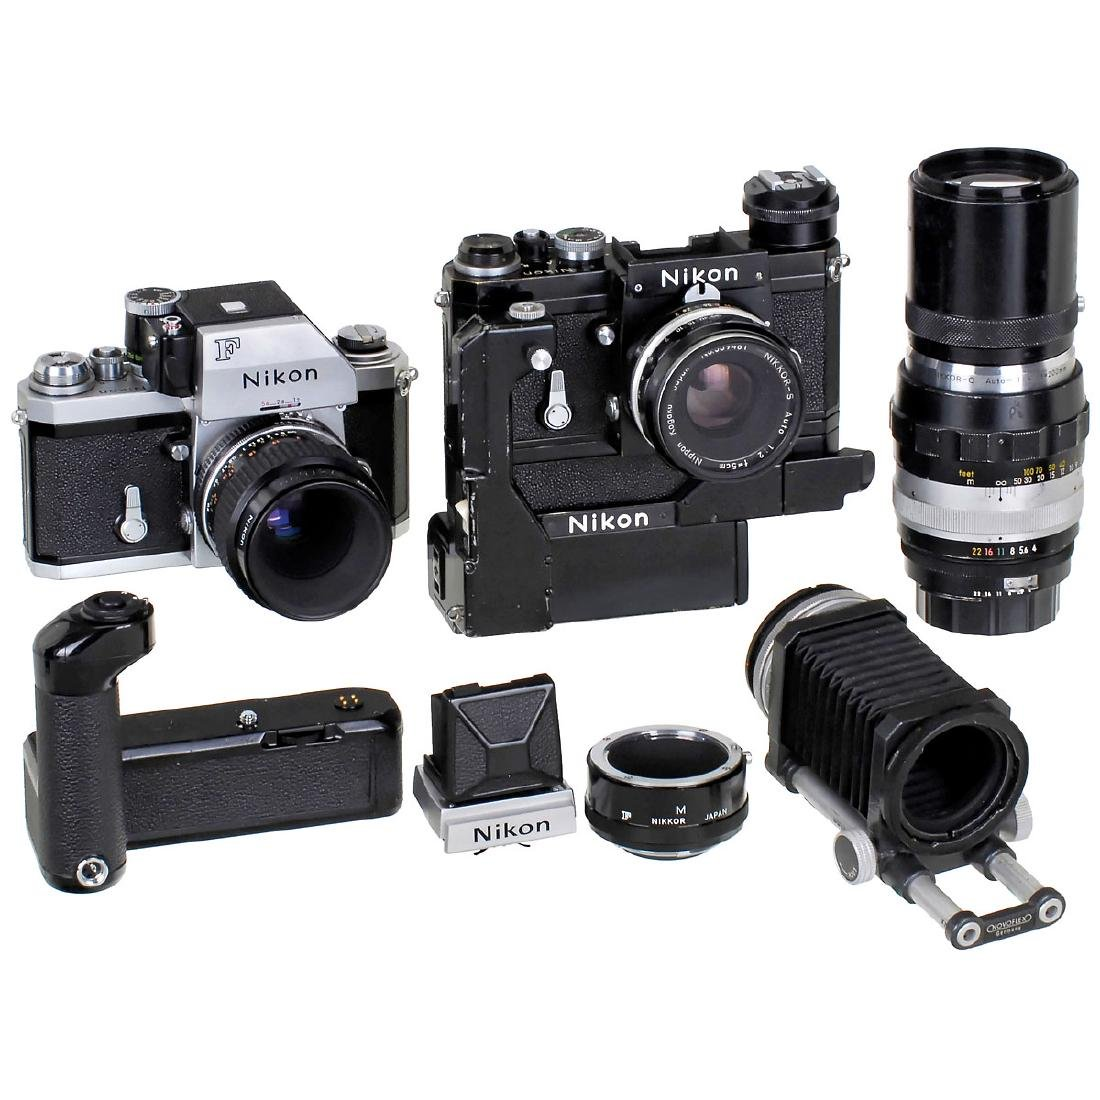 Nikon-Cameras, Lenses and Accessories